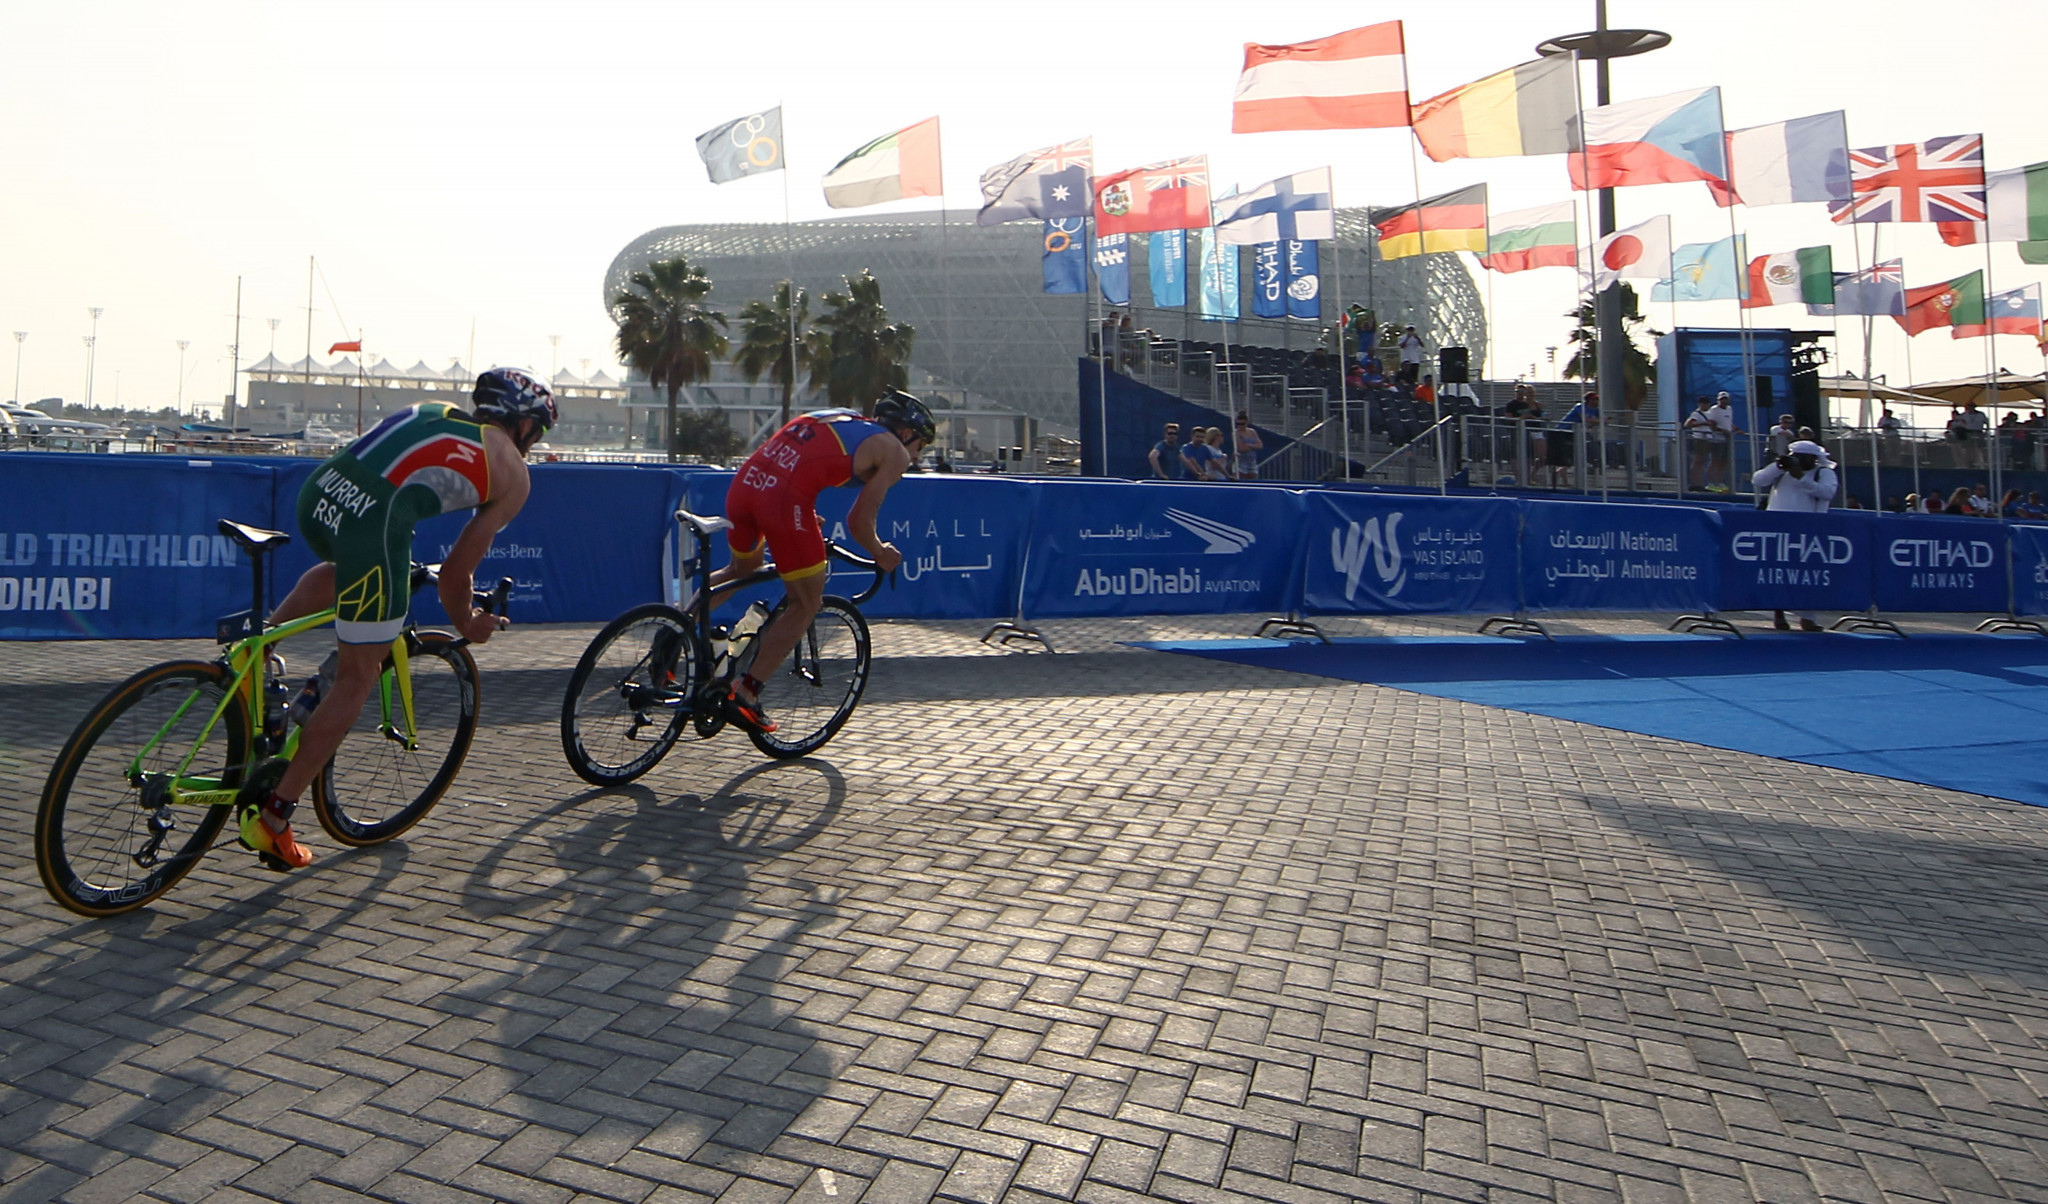 Abu Dhabi hosted the first World Triathlon Championships Series event of the season from 2015 to 2019 ©Getty Images